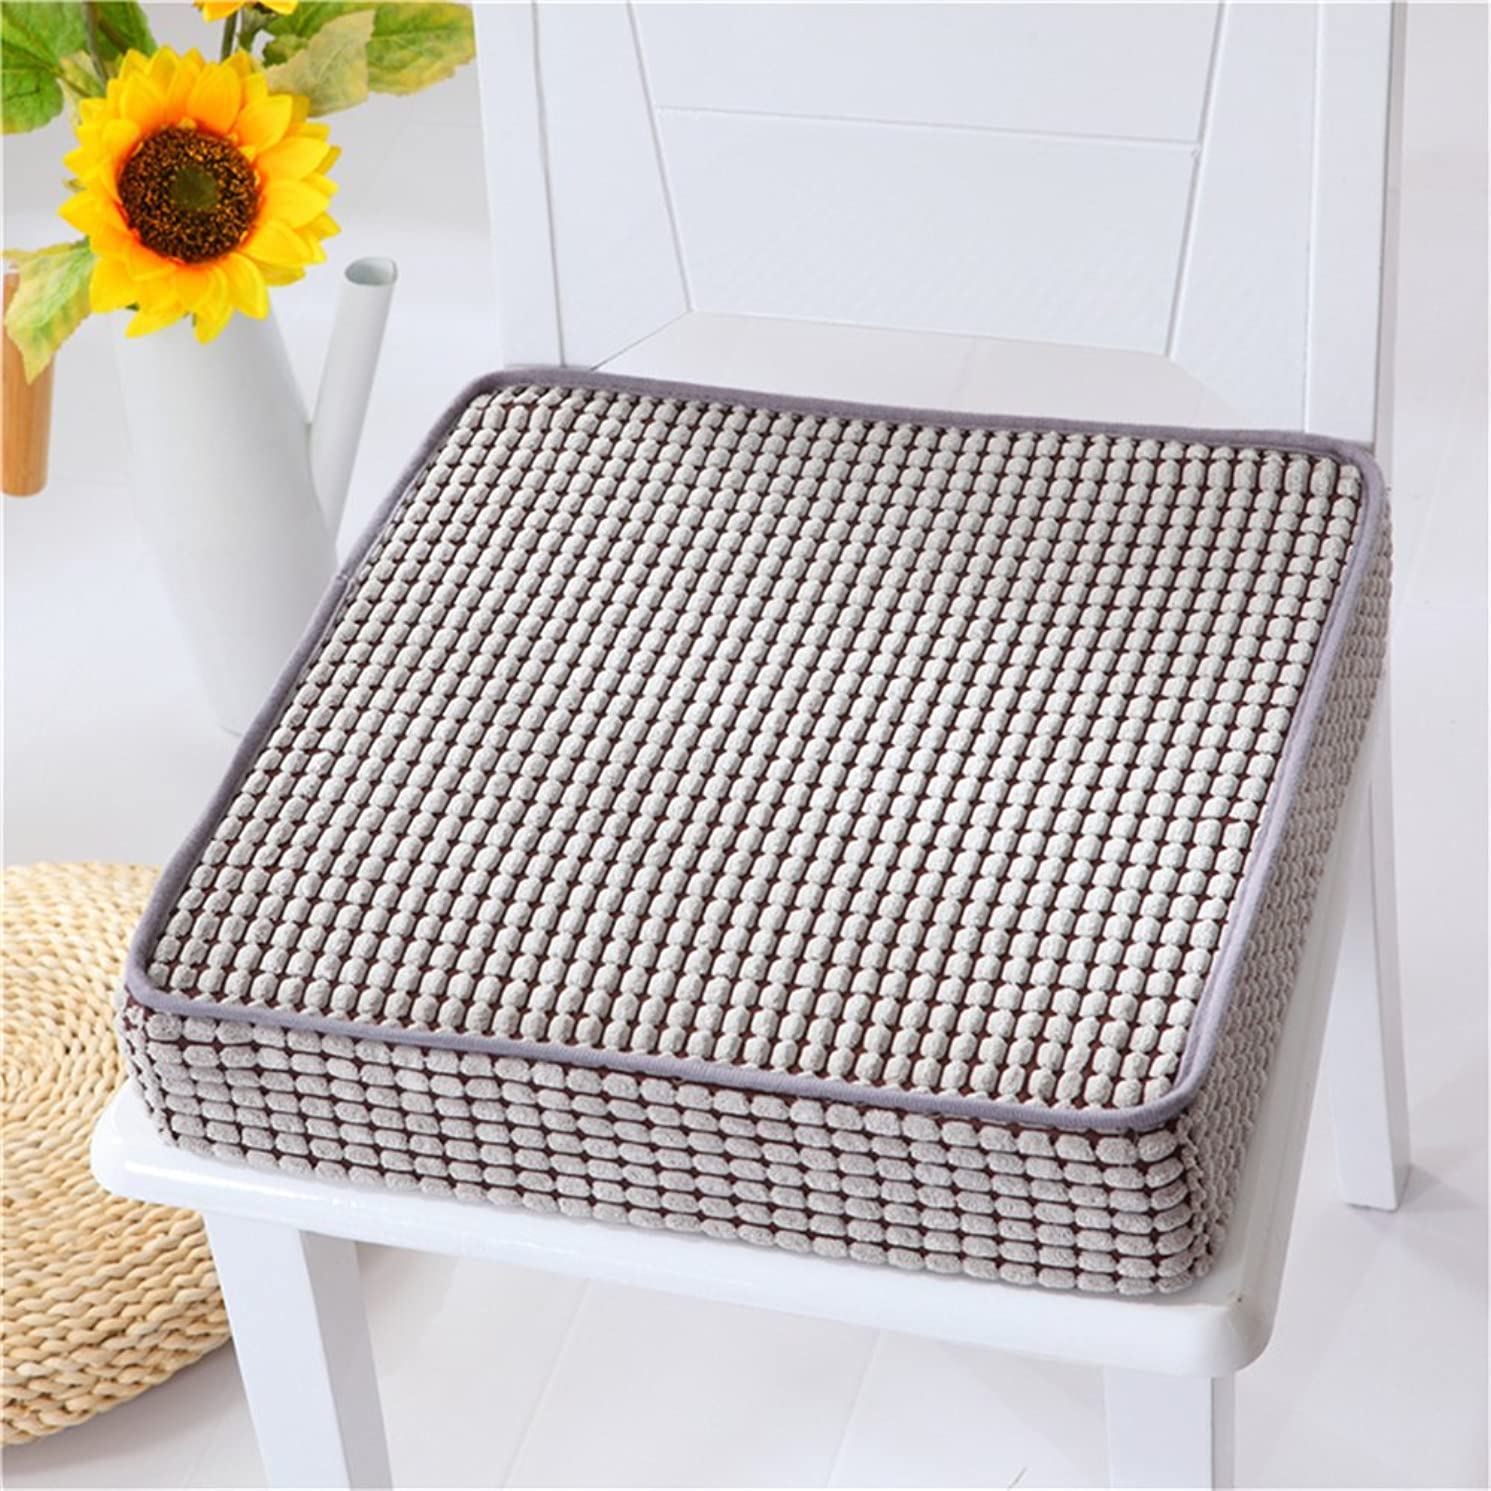 VANCORE Indoor/Outdoor Chair Cushion Non-Skid Memory Foam Seat Cushion Luxury Chair Pillow Square Chair Cushions Pads, Grey 16